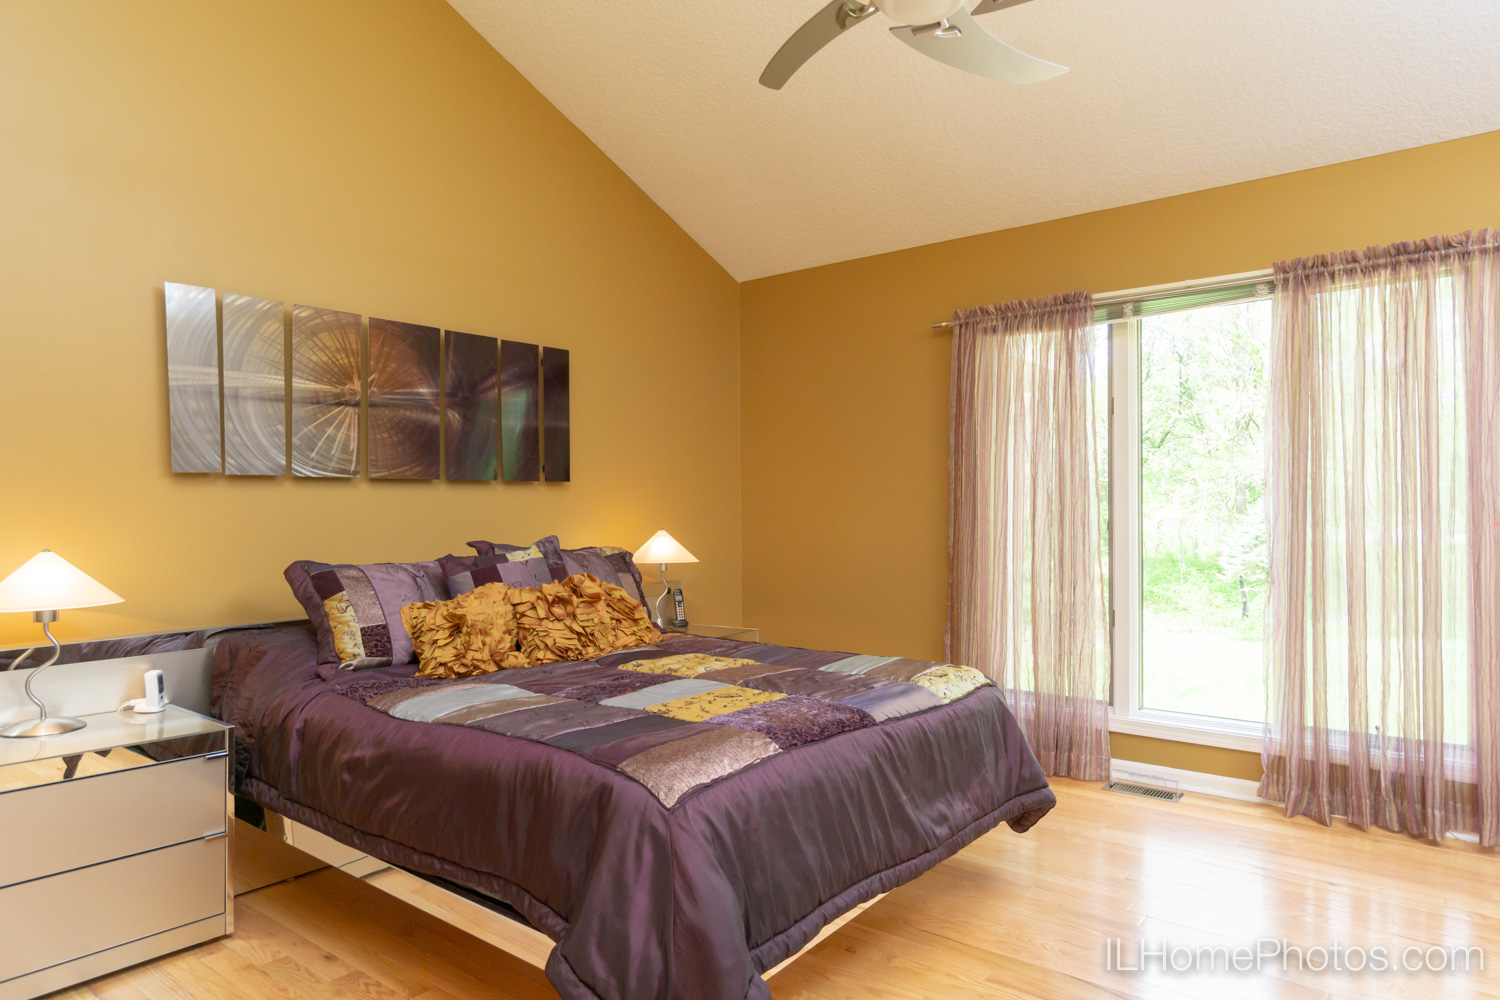 Interior master bedroom photograph for real estate in Mt Zion, IL :: Illinois Home Photography by Michael Gowin, Lincoln, IL